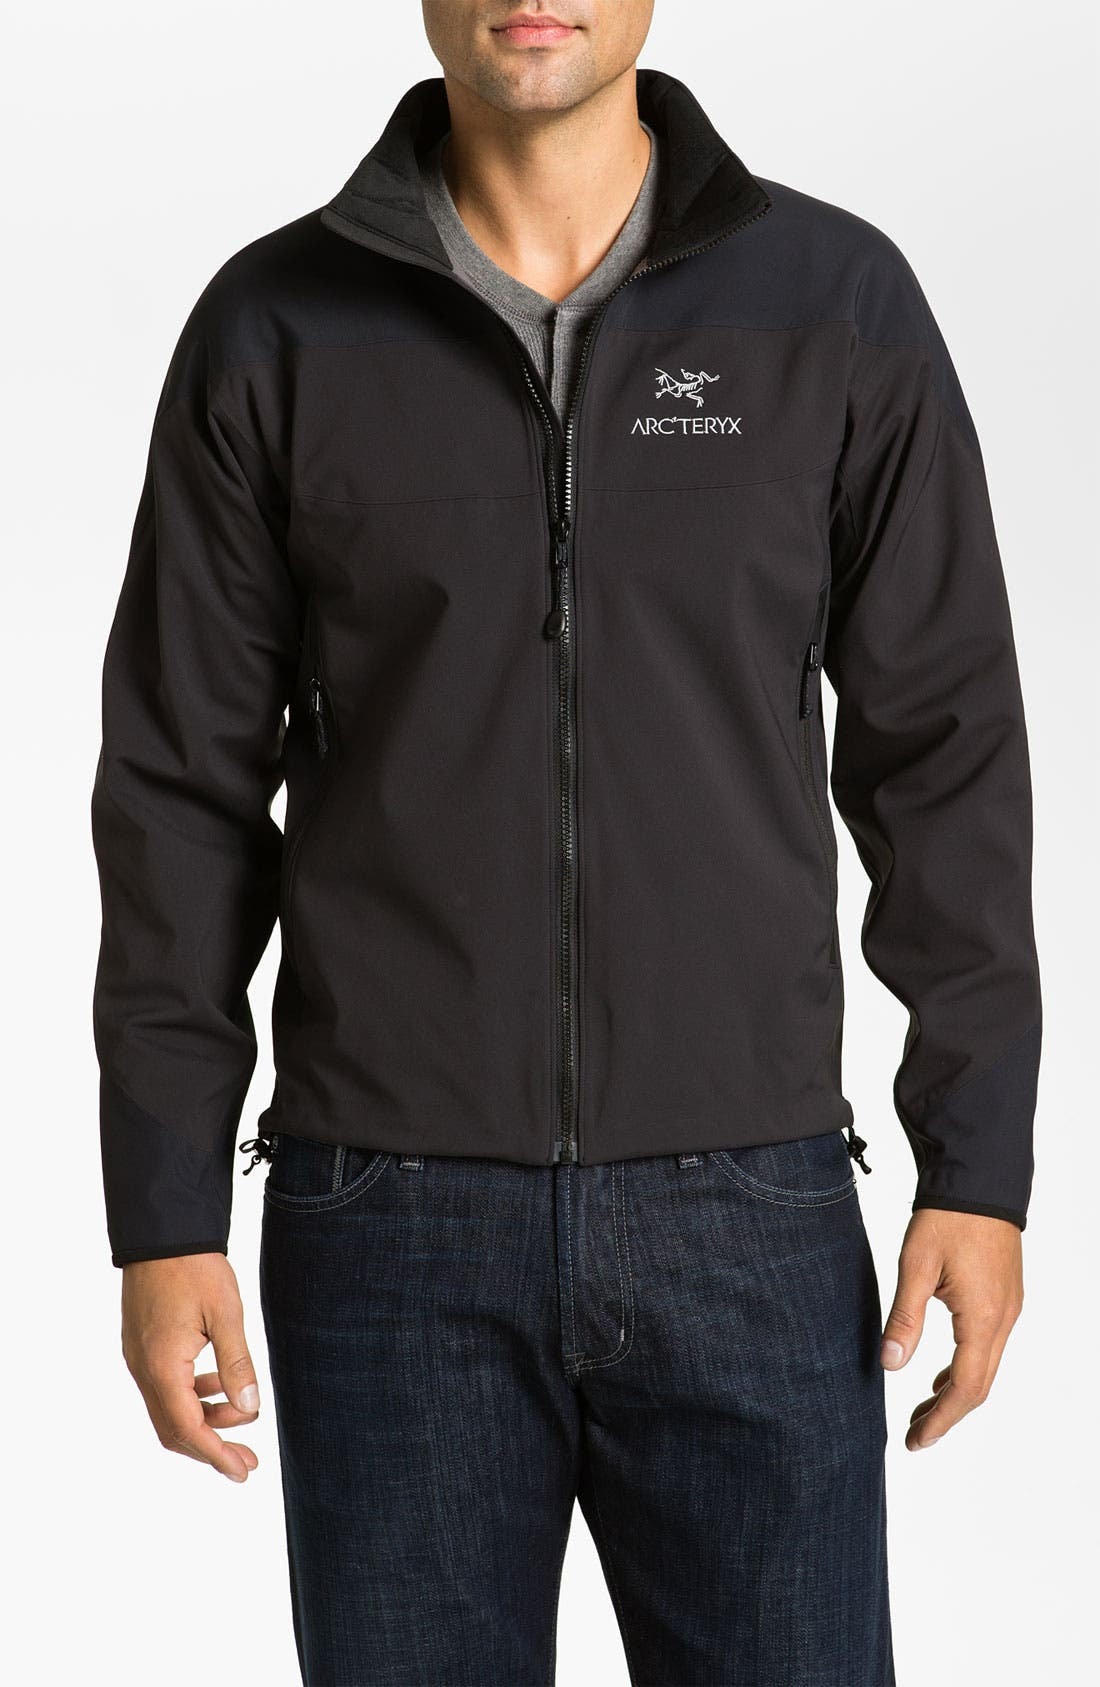 Main Image - Arc'teryx 'Venta AR' Athletic Fit Soft Shell Jacket